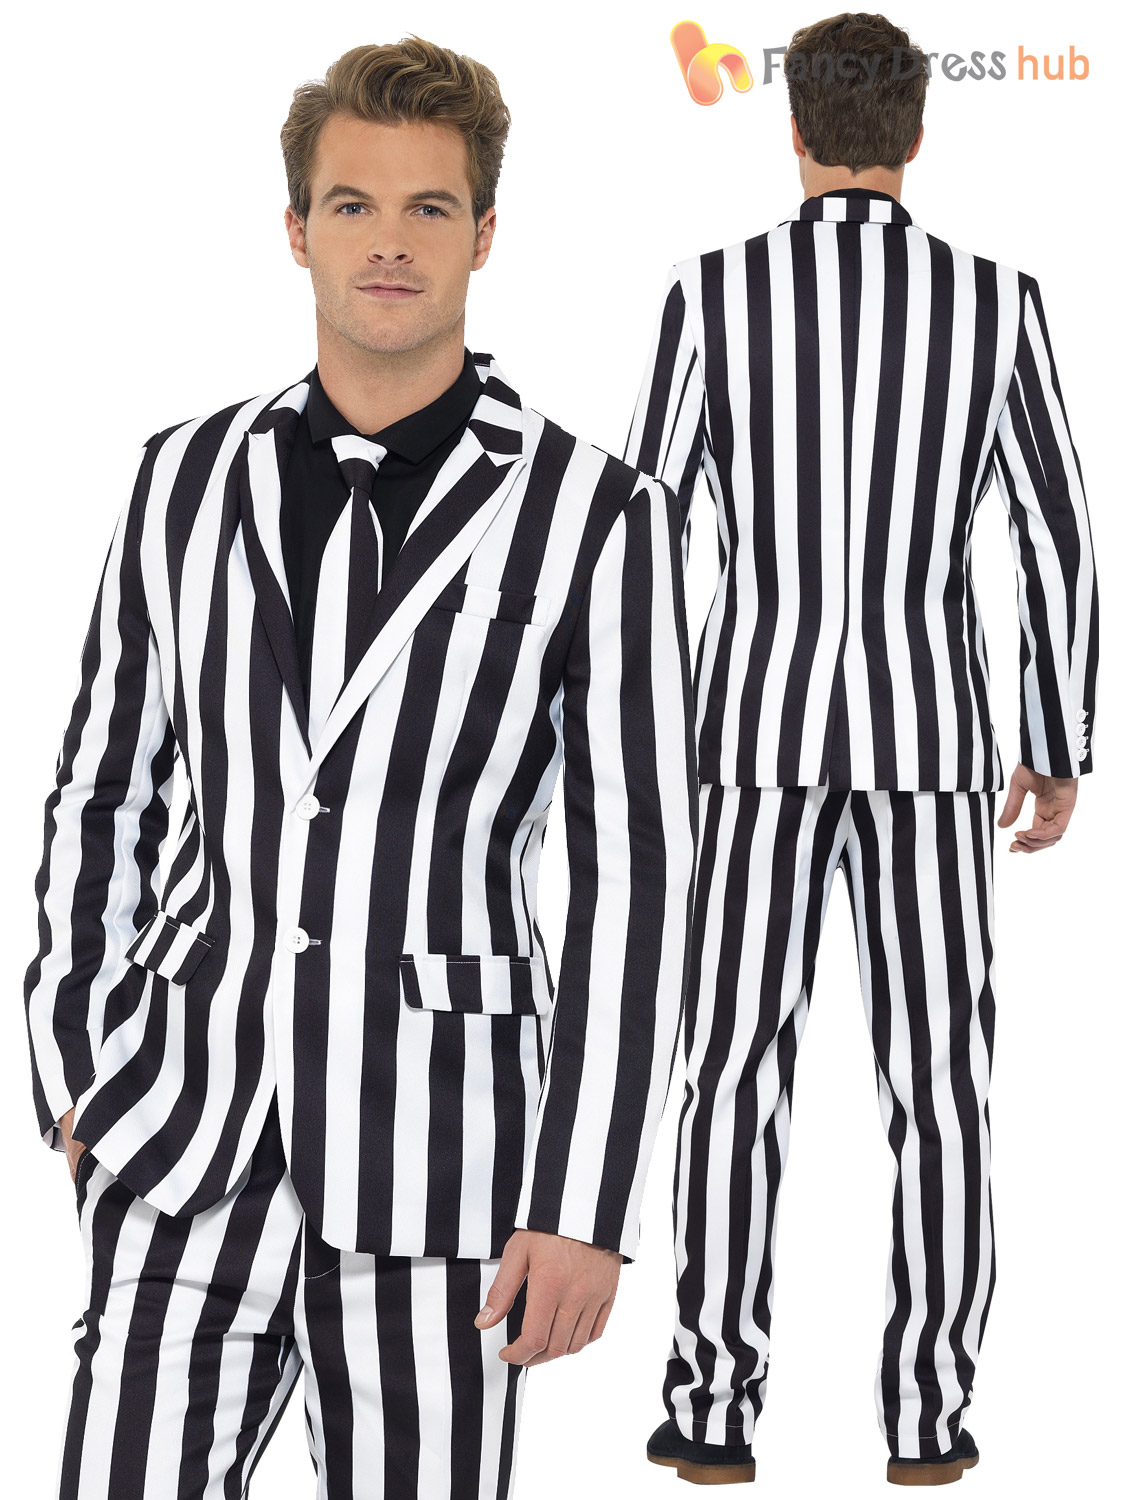 Mens Stand Out Suit Stag Do Fancy Dress Party Outfit Funny Comedy Costume Adult | eBay